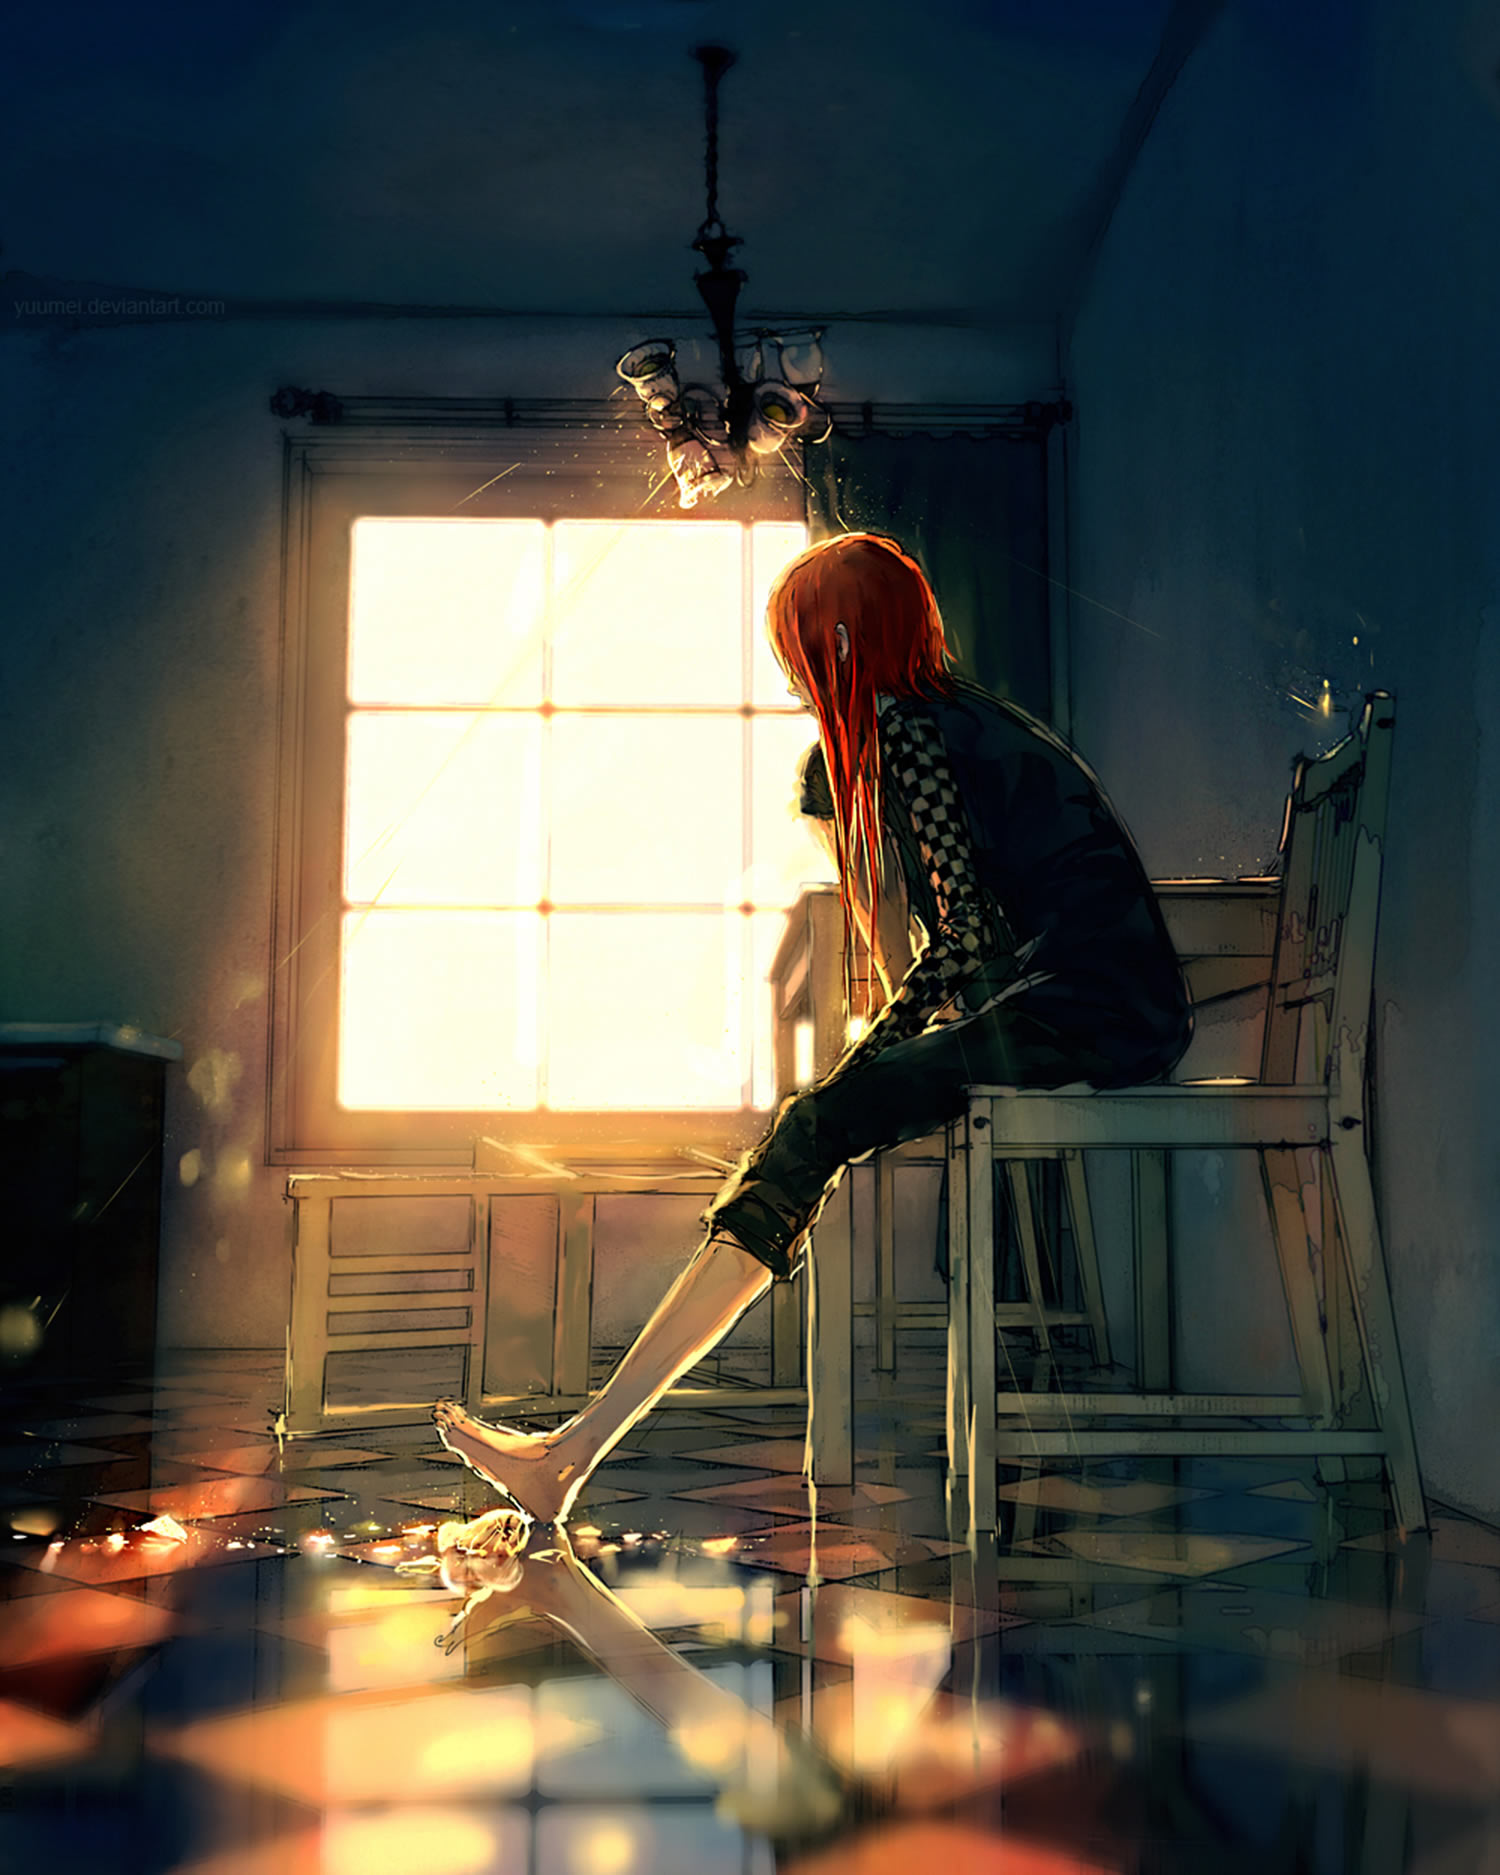 girl looking at window, illustration, anime